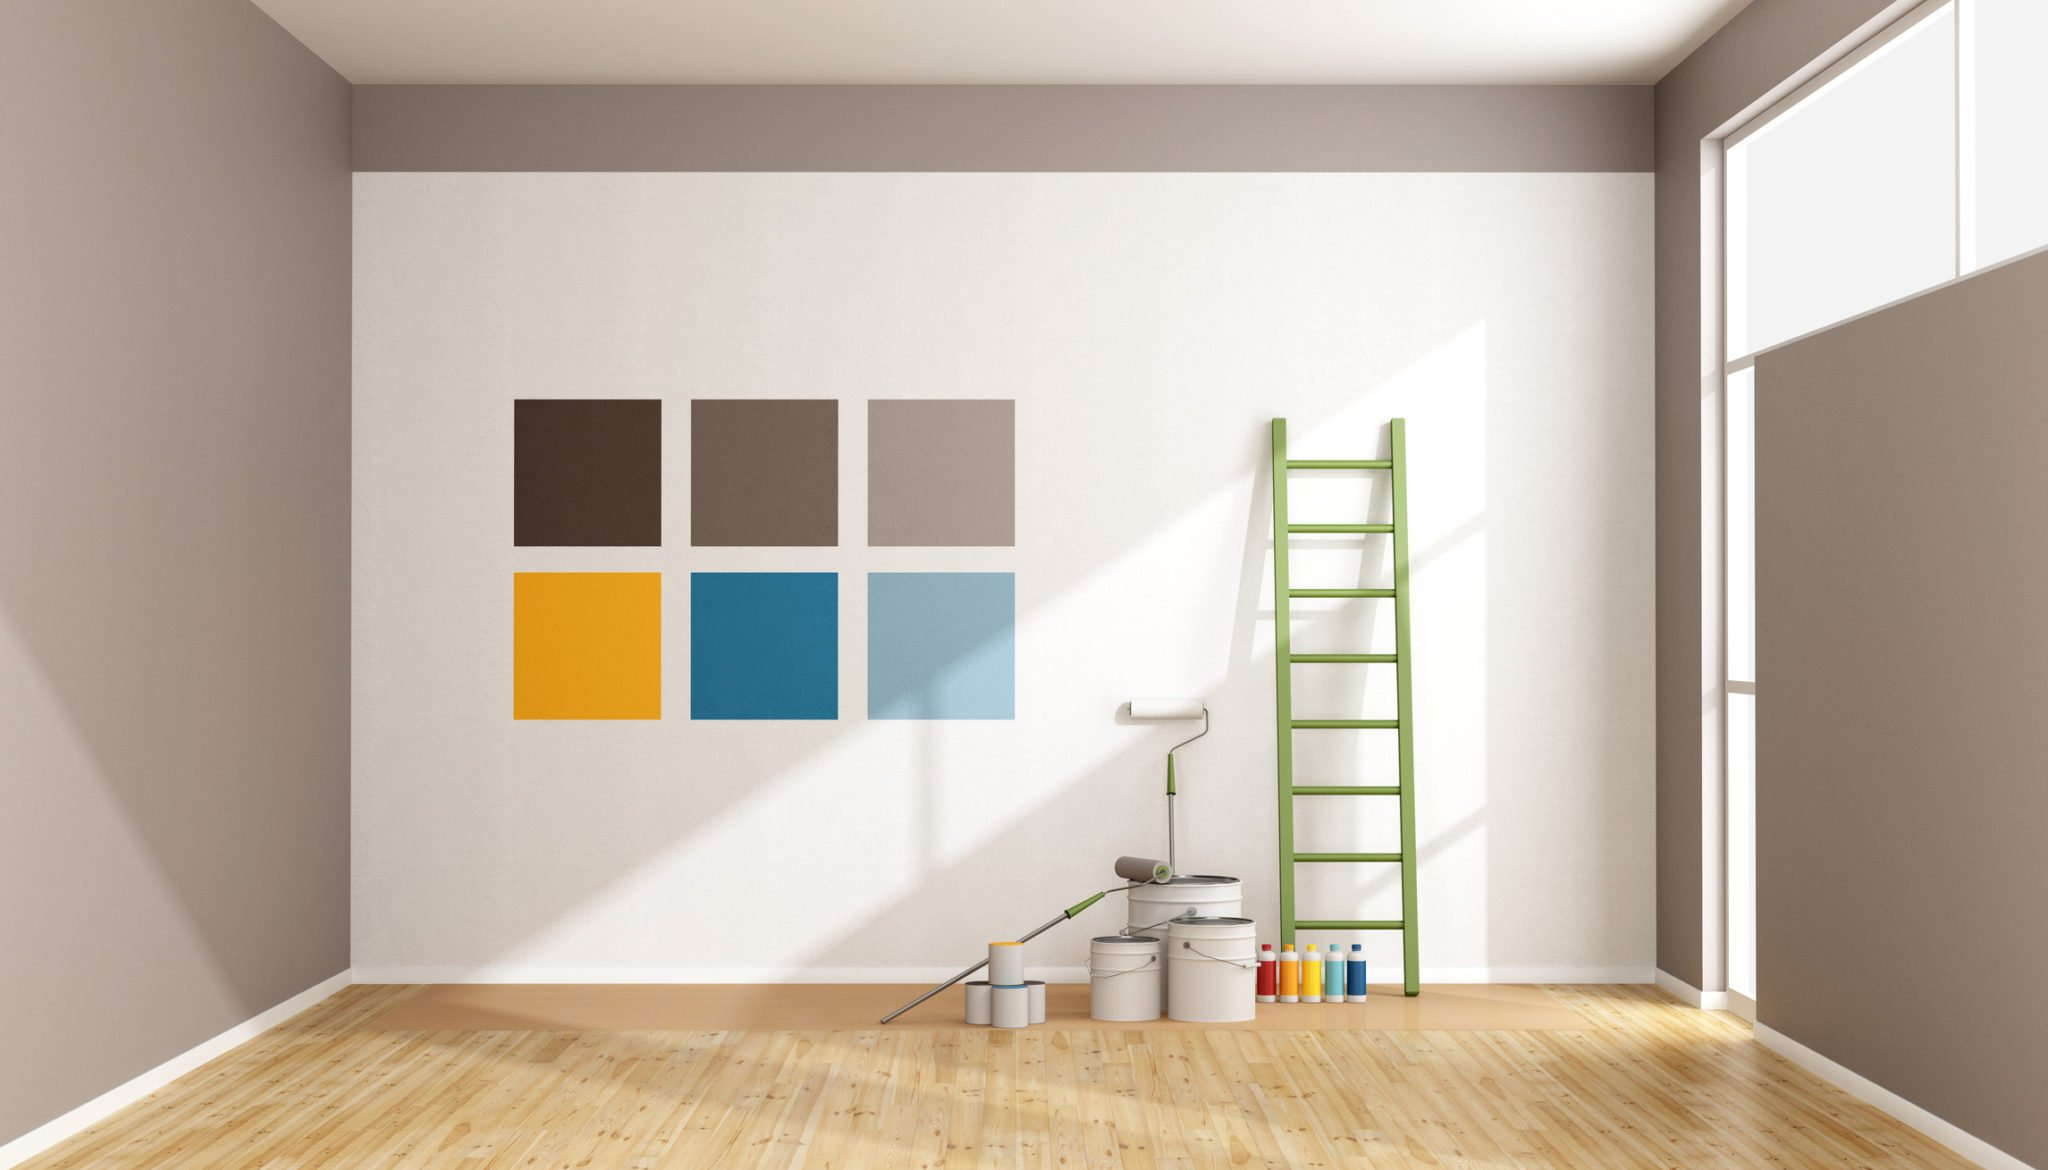 How to Choose the Best Interior Paint Colors (6 Designer Tips!)